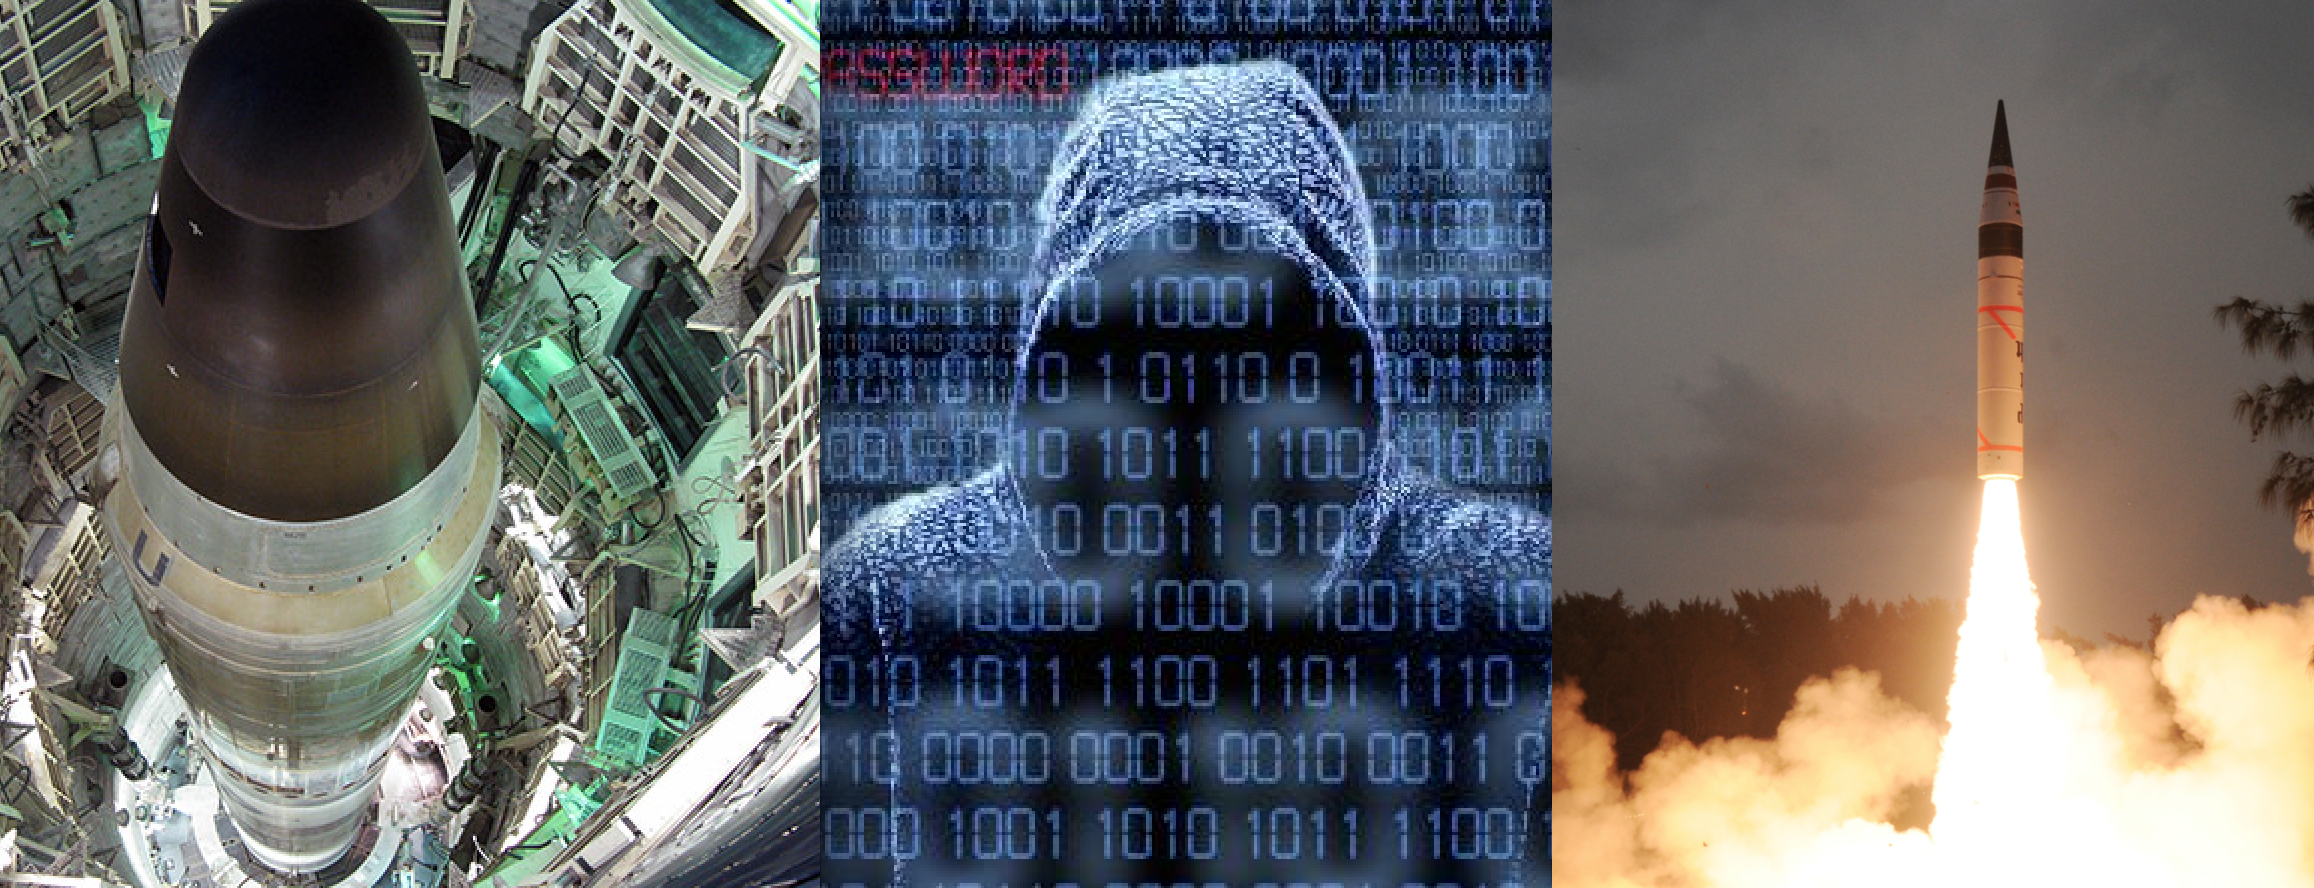 'WannaCry' Hacker Group Warns of June 'Data Dump' Including Nuclear Missile Codes